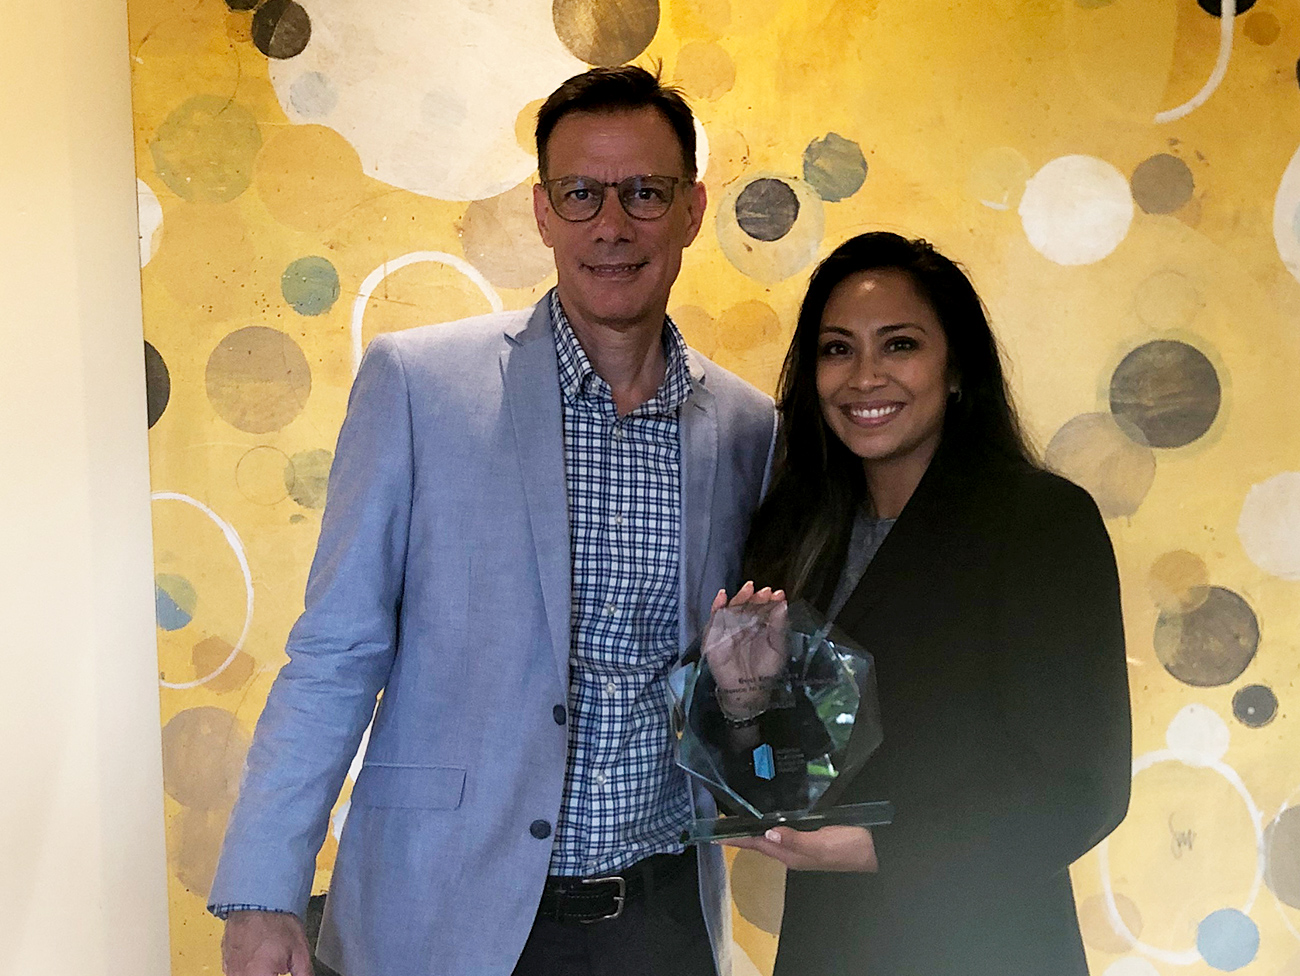 Maria Dee, executive director of Workforce Well-Being at Kaiser Permanente, accepts the award for Best Employers: Excellence in Health and Well-Being from Brian Marcotte, president and CEO of the National Business Group on Health.